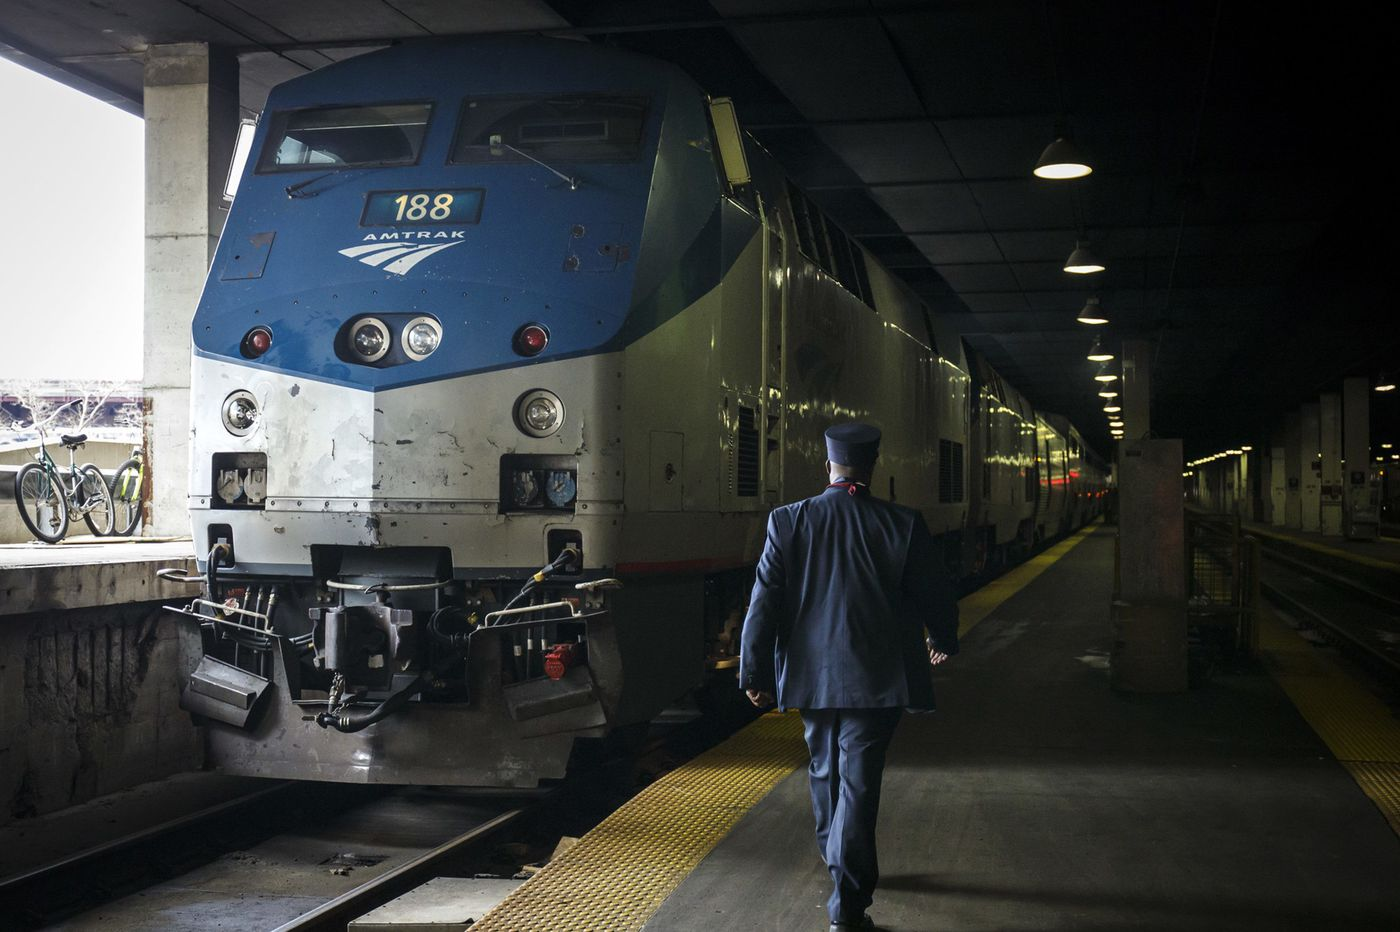 Amtrak to cut up to 20% of workforce as coronavirus takes toll